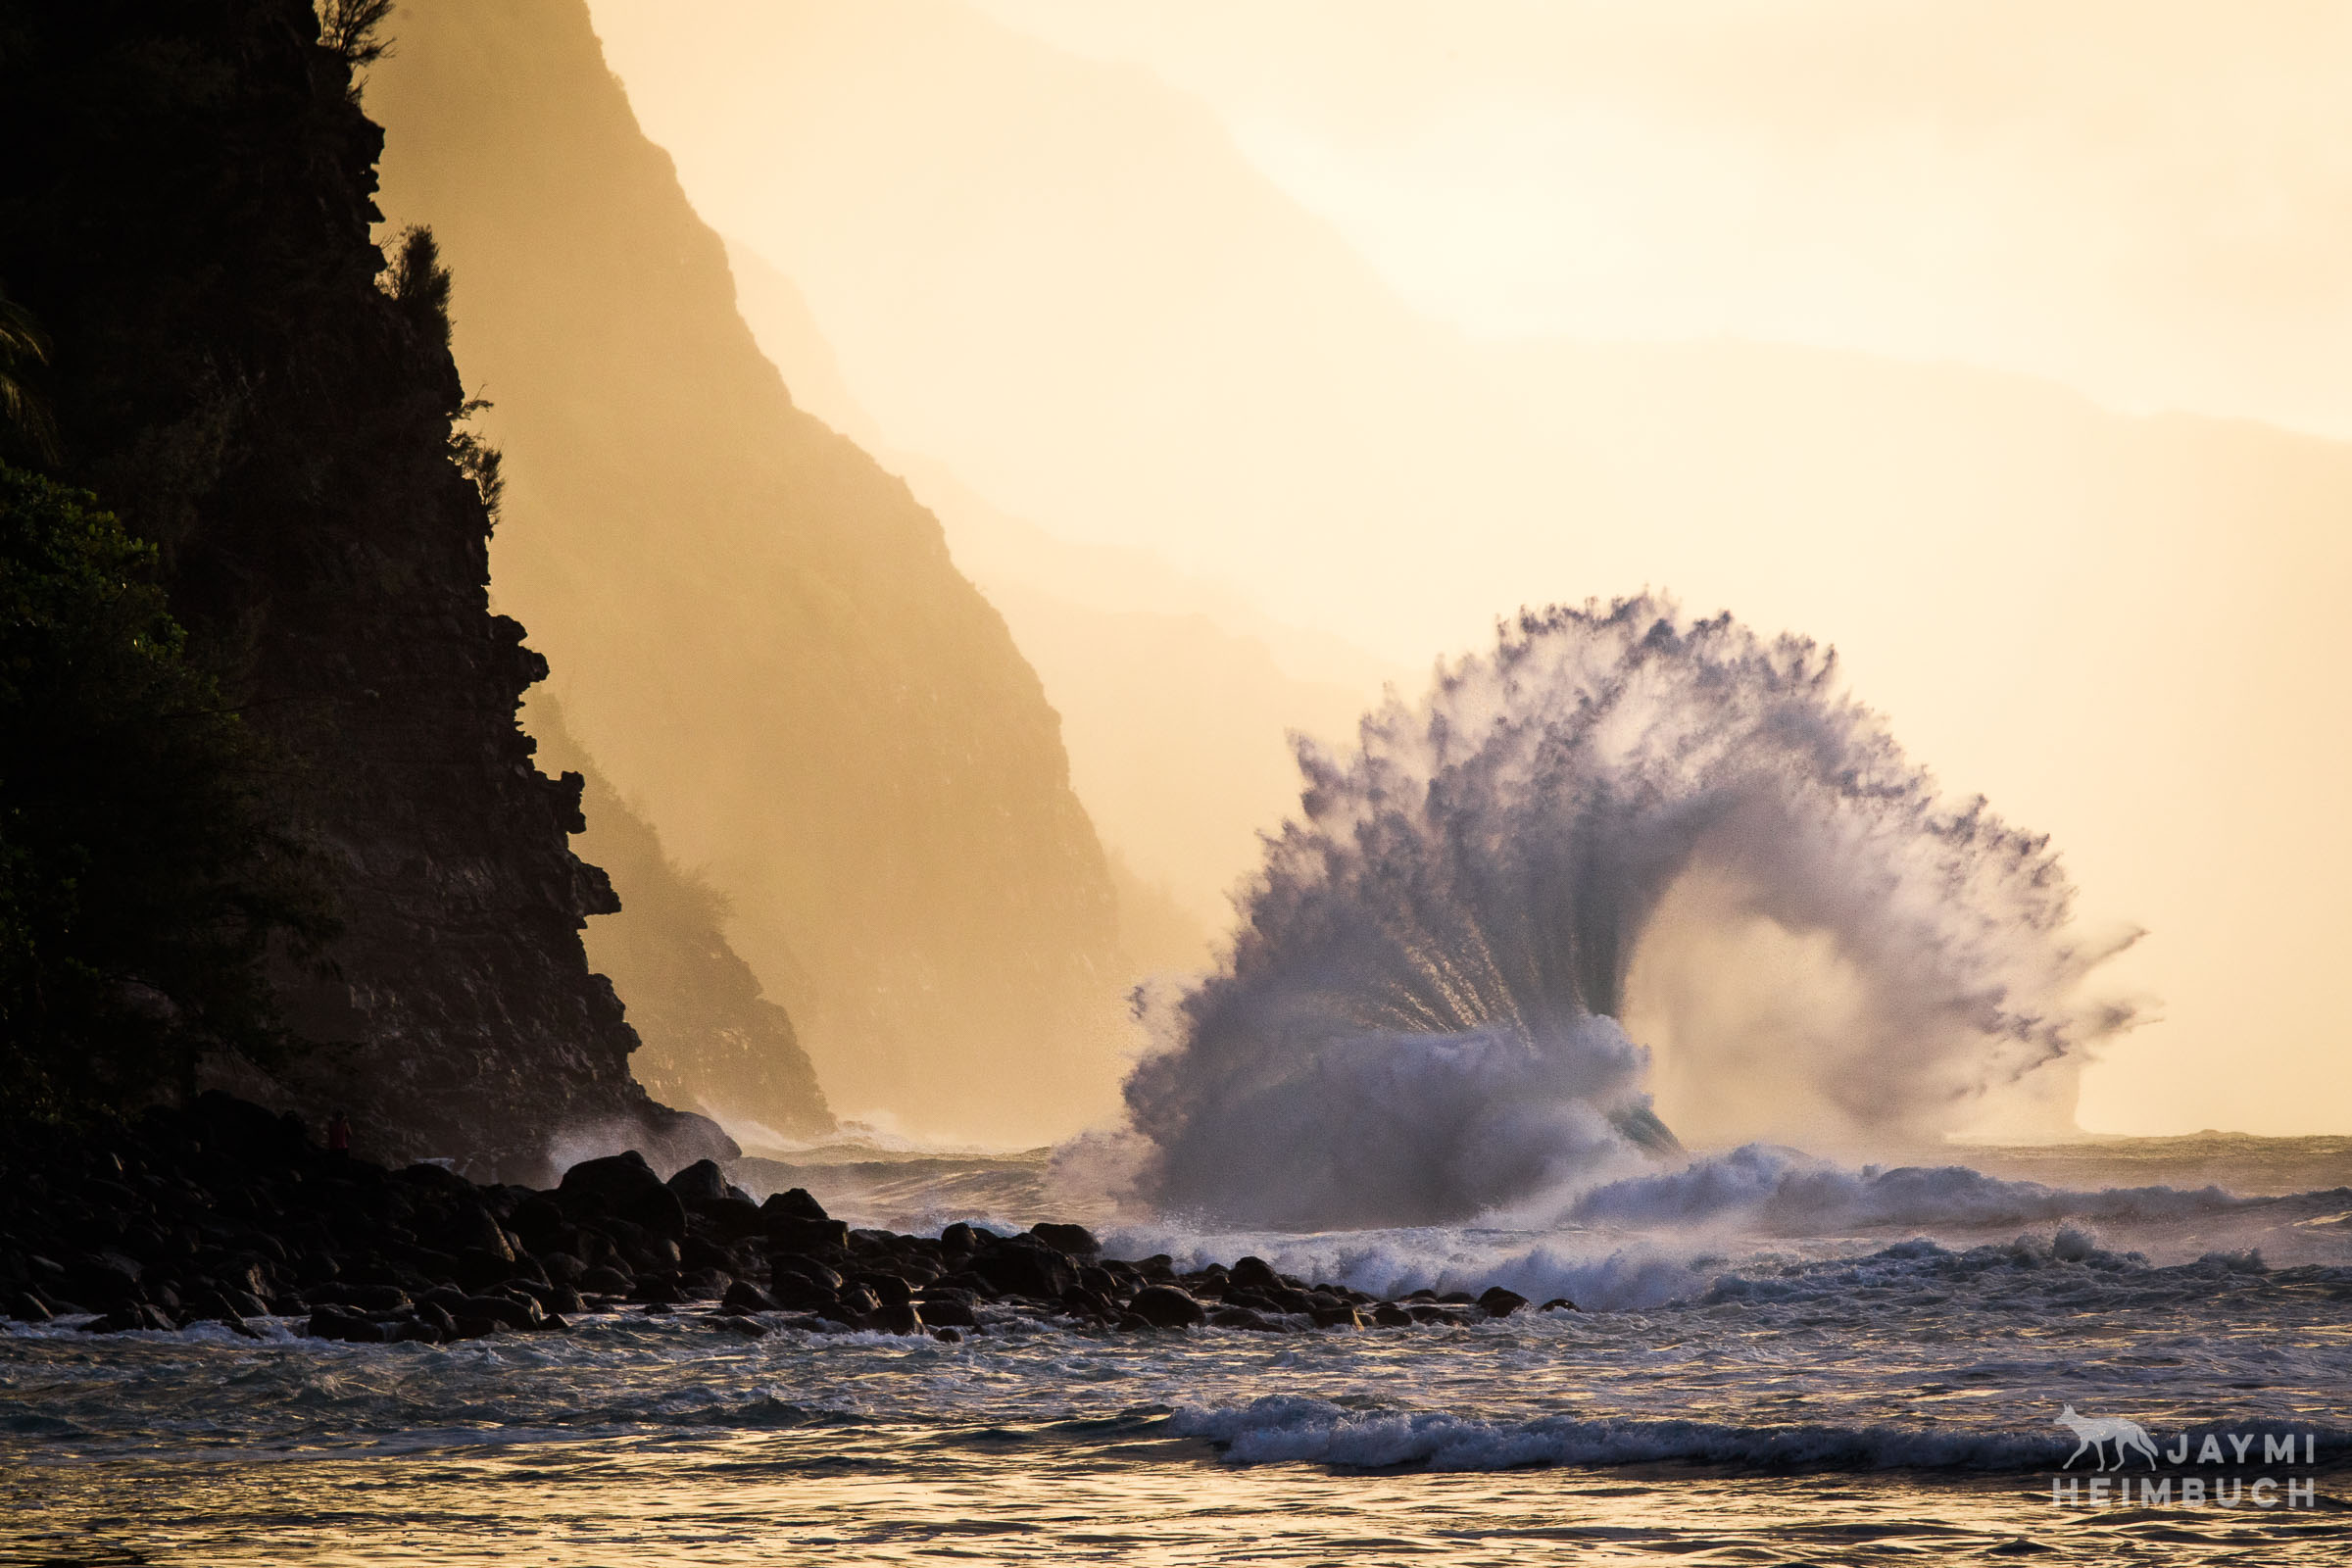 Fan wave crashing on Na Pali shore, Kauai, Hawaii